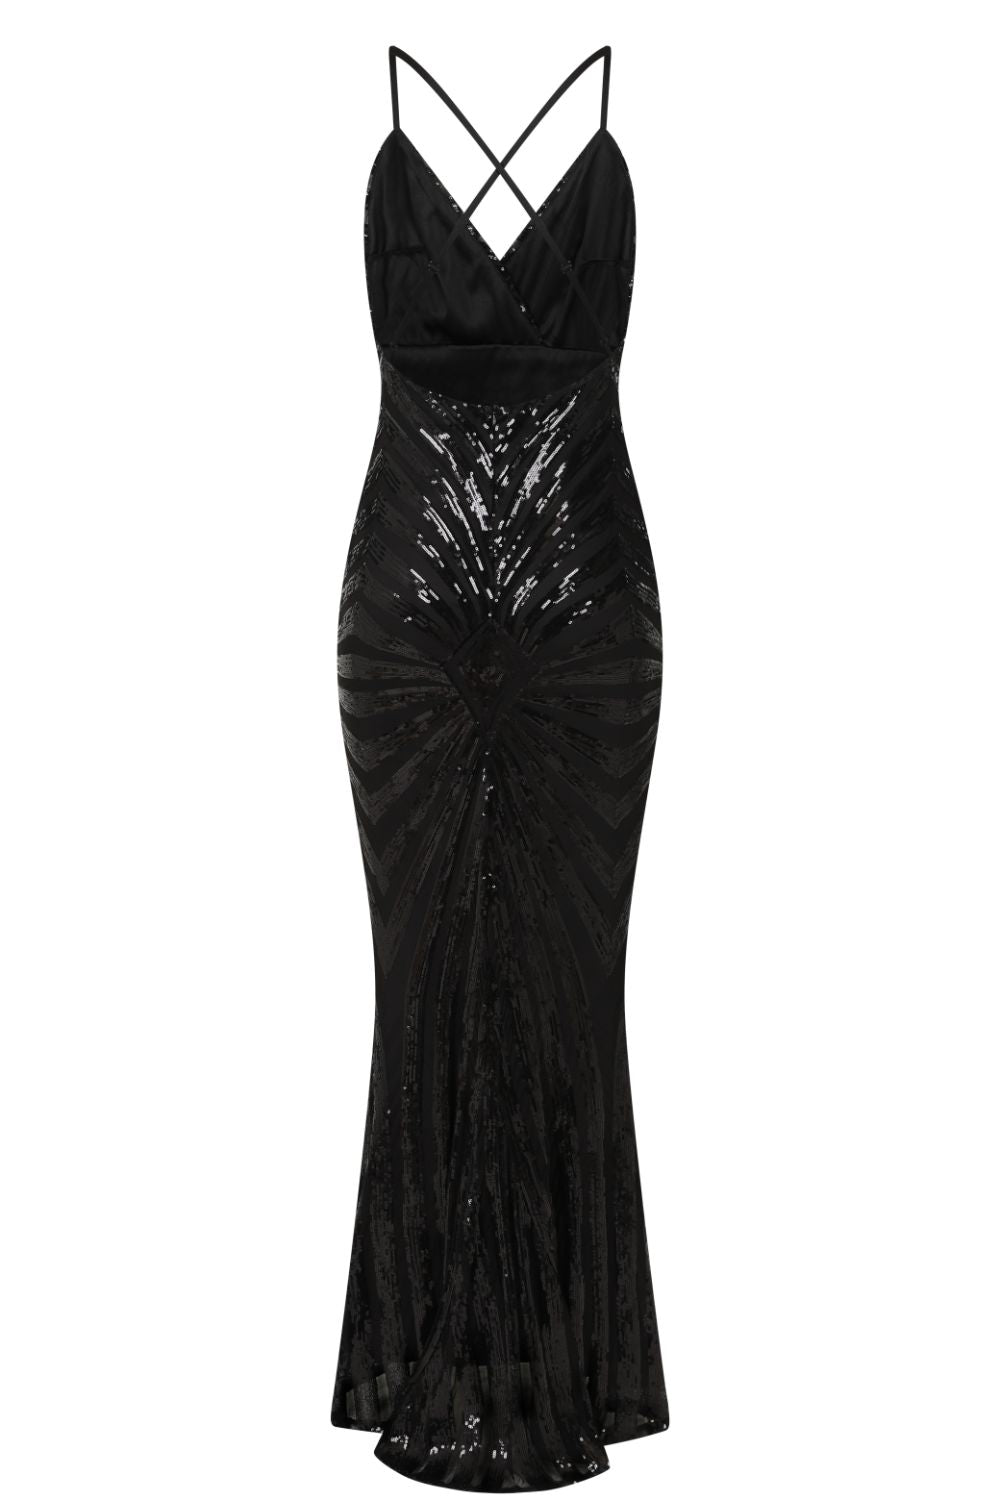 Timeless Black Plunge Sequin Hourglass Illusion Mermaid Maxi Dress